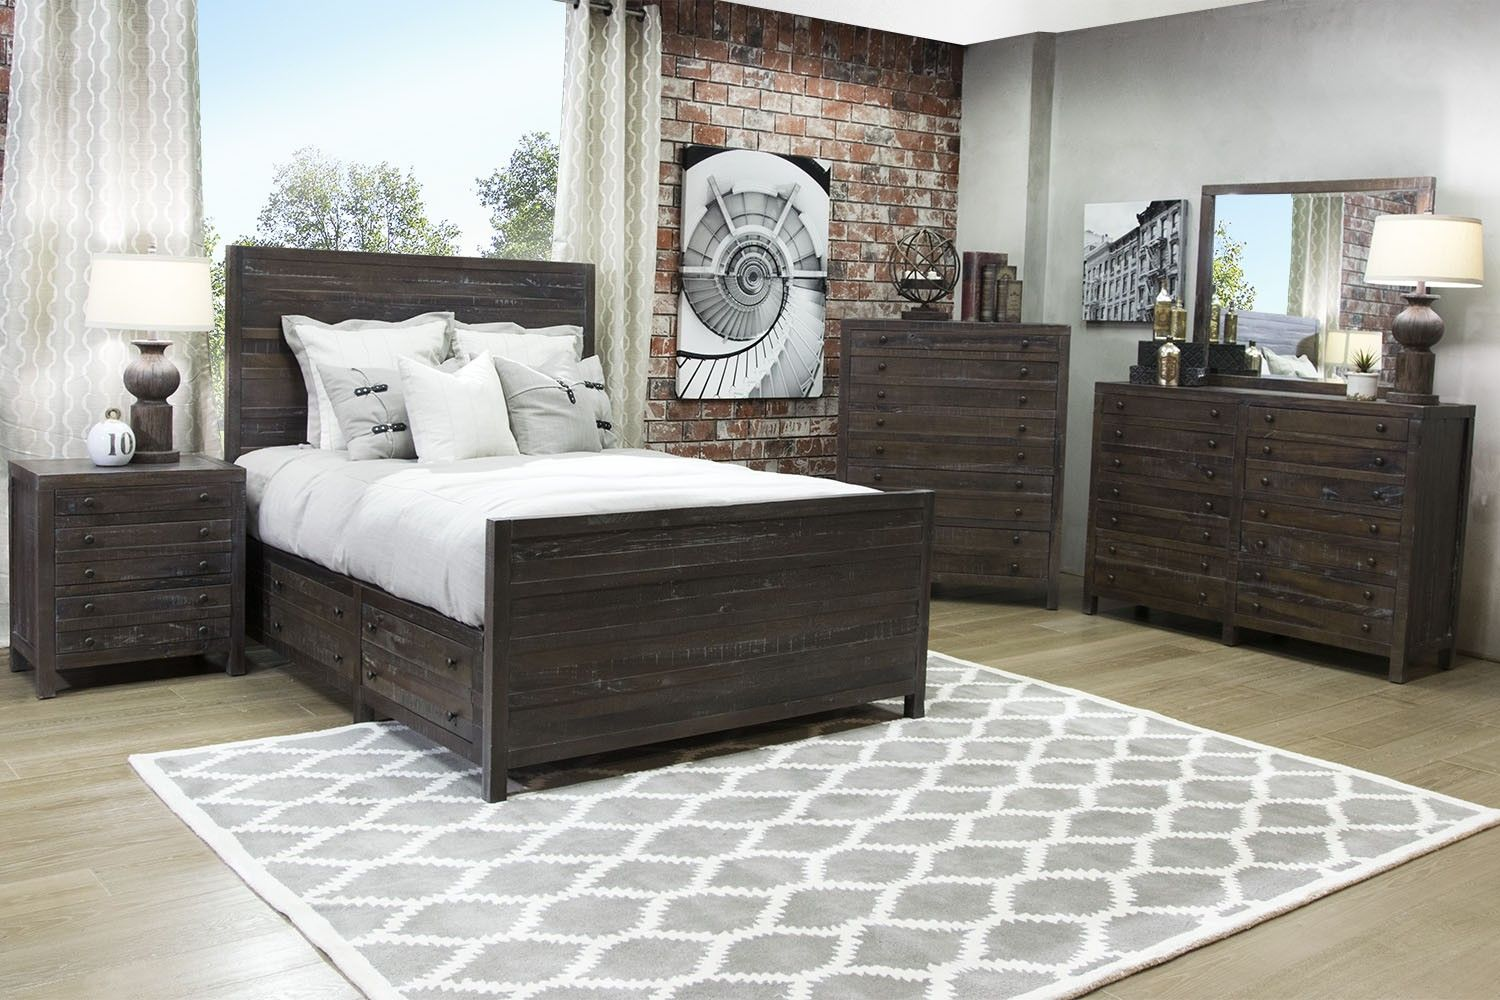 Mor Furniture for Less: Townsend Storage Queen Bed | Mor ...